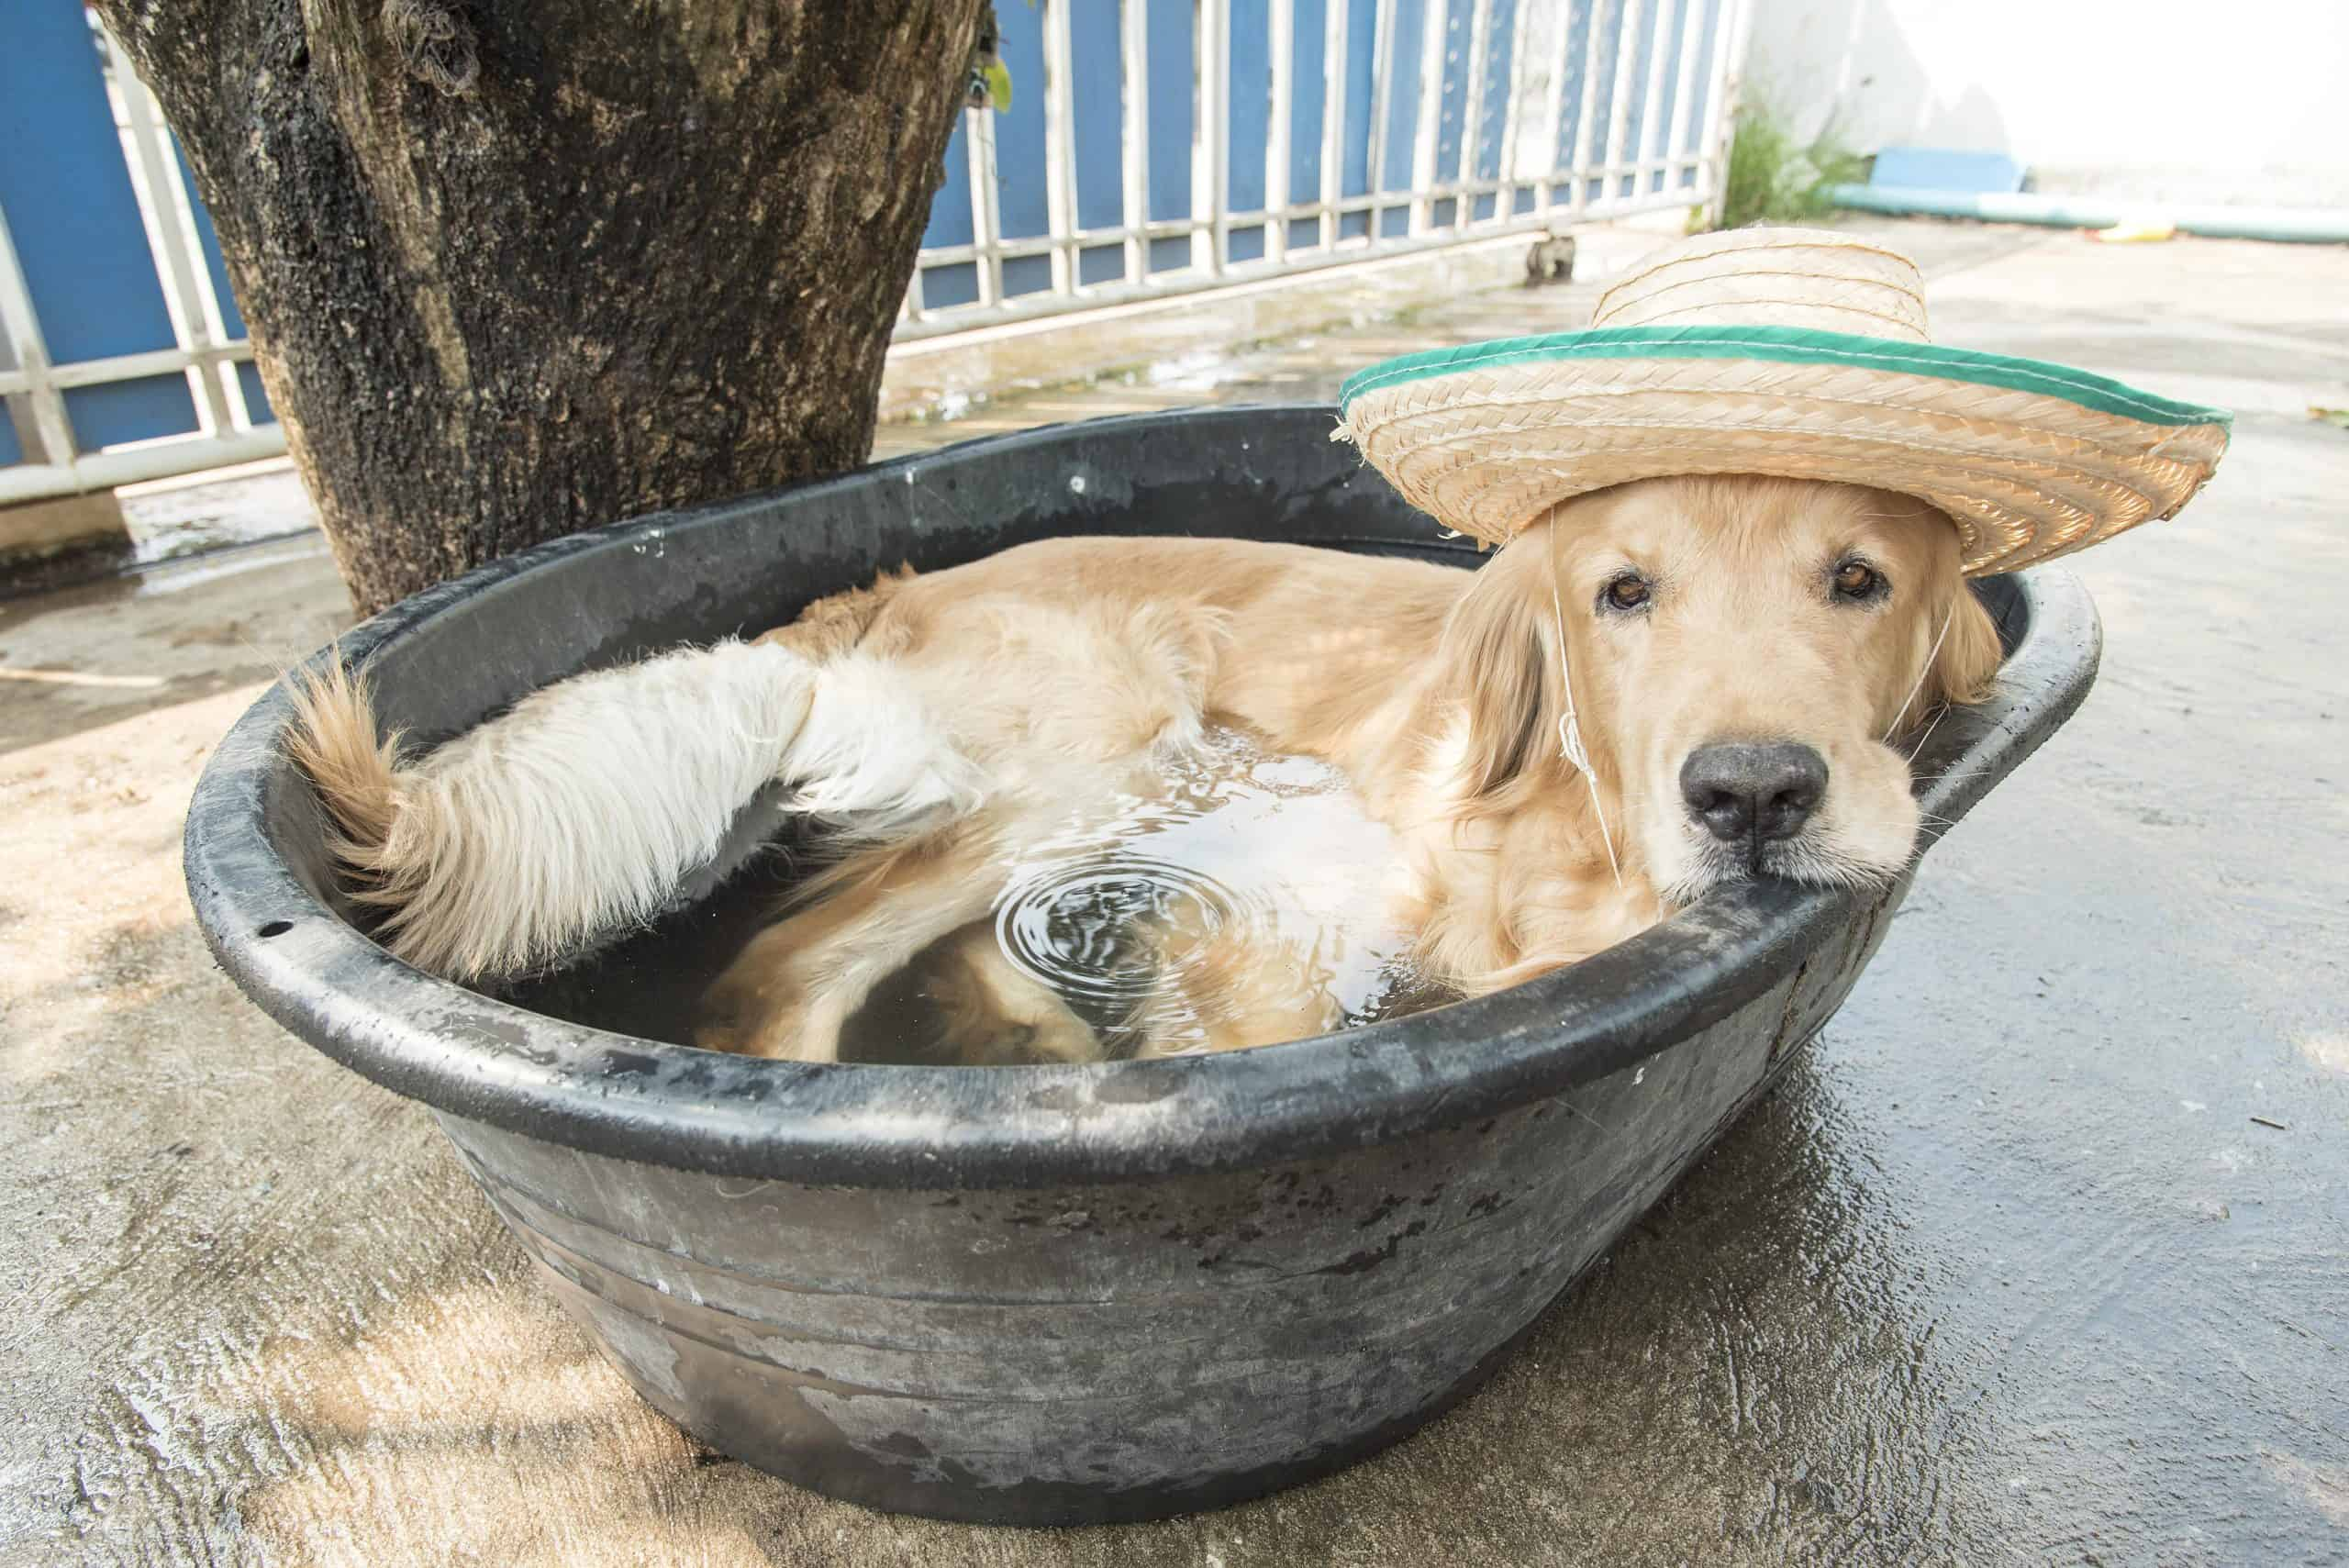 Golden retriever lounges in a bucket of water.